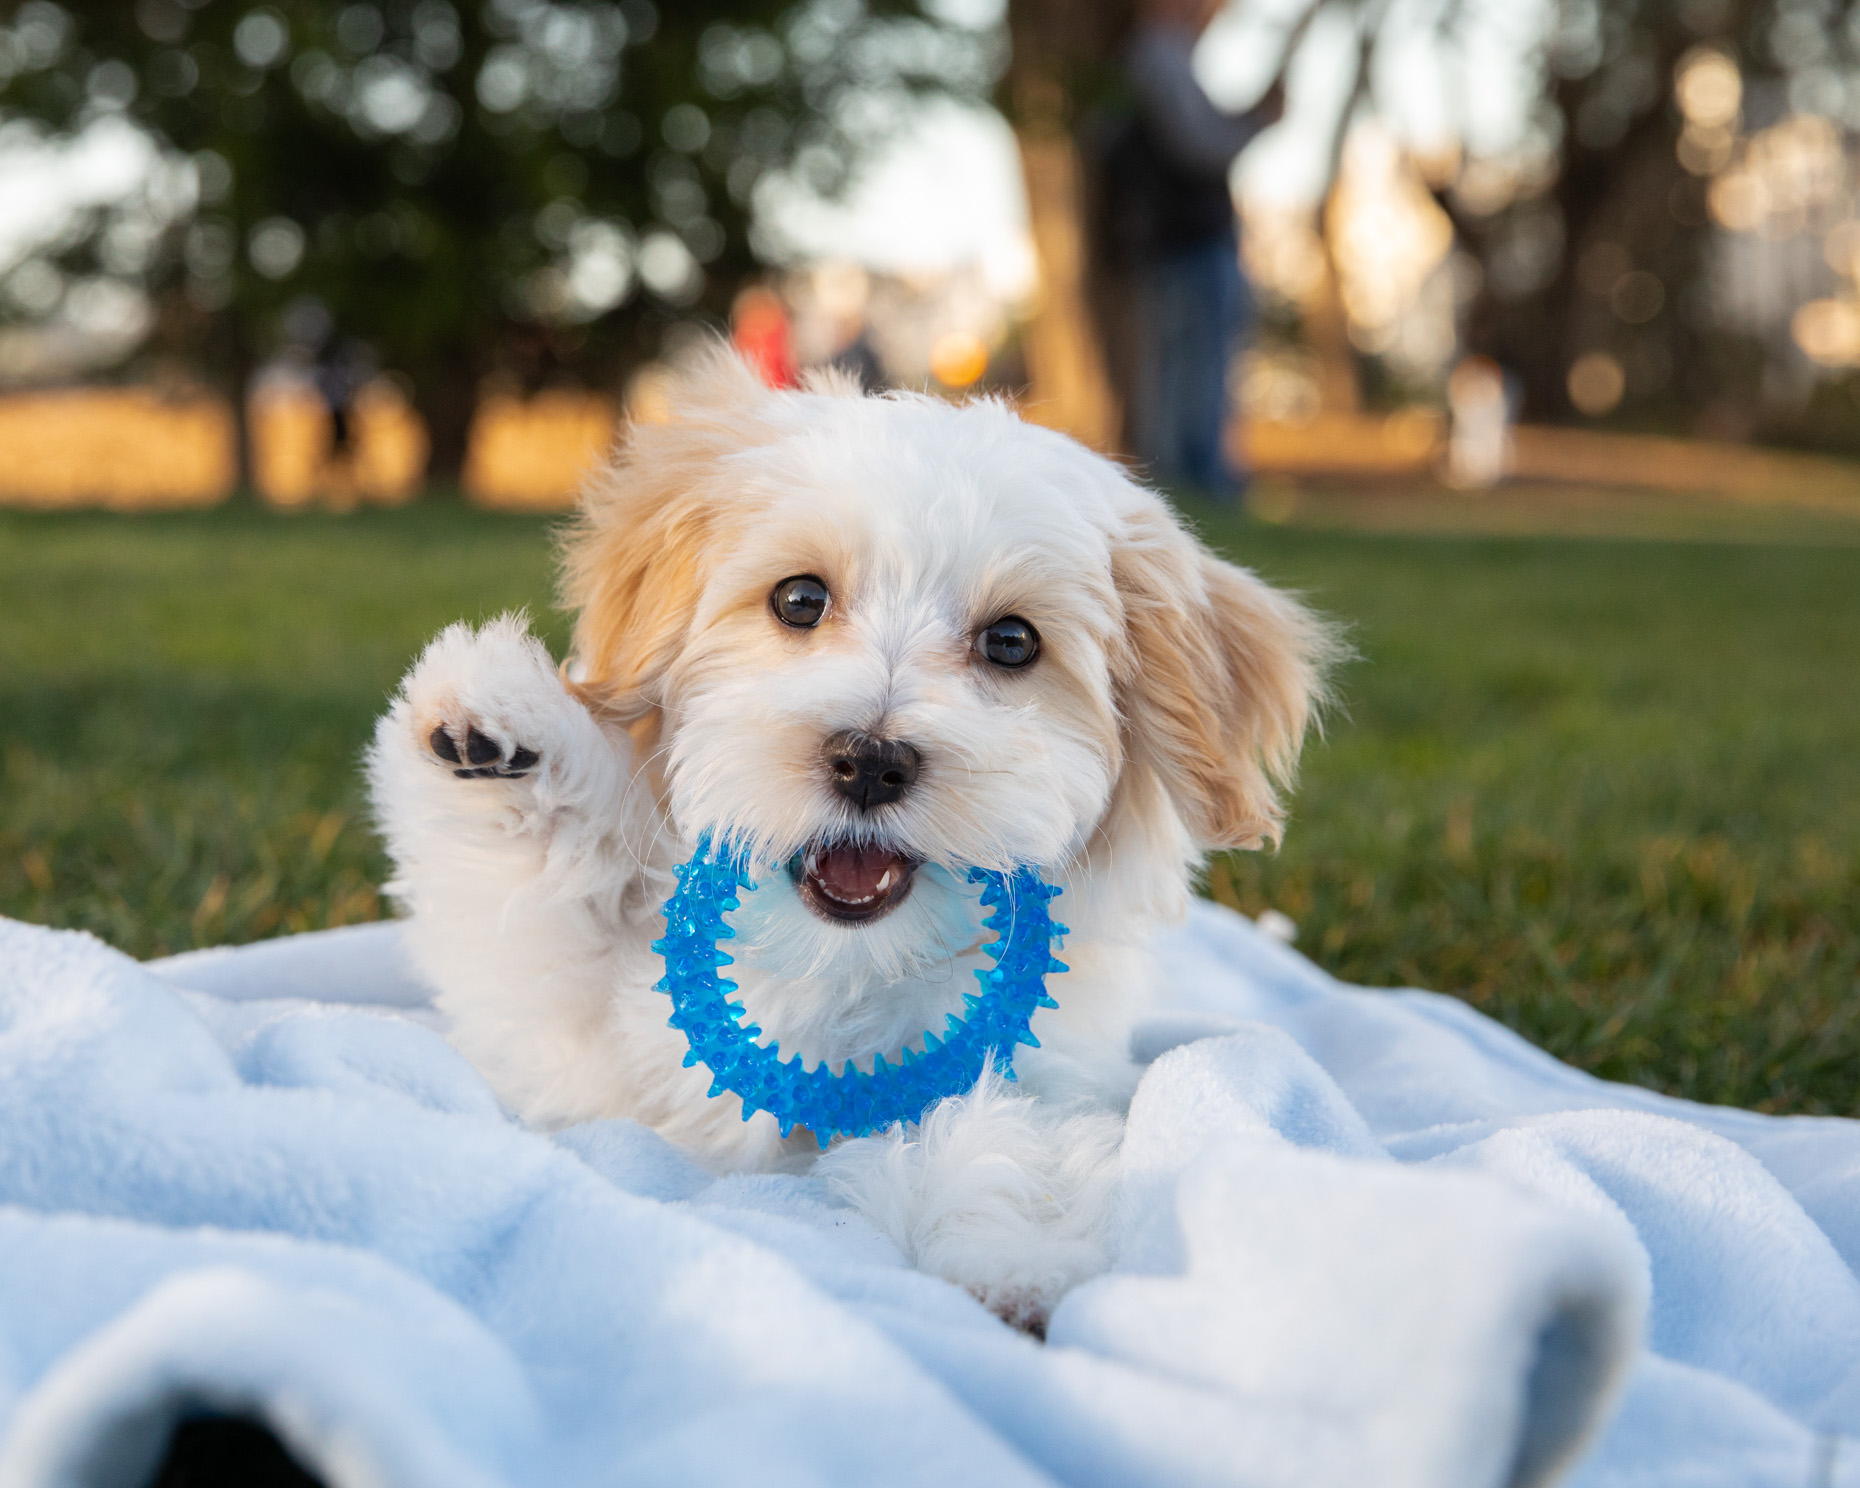 Pet Photography | Puppy with Ring Toy by Mark Rogers